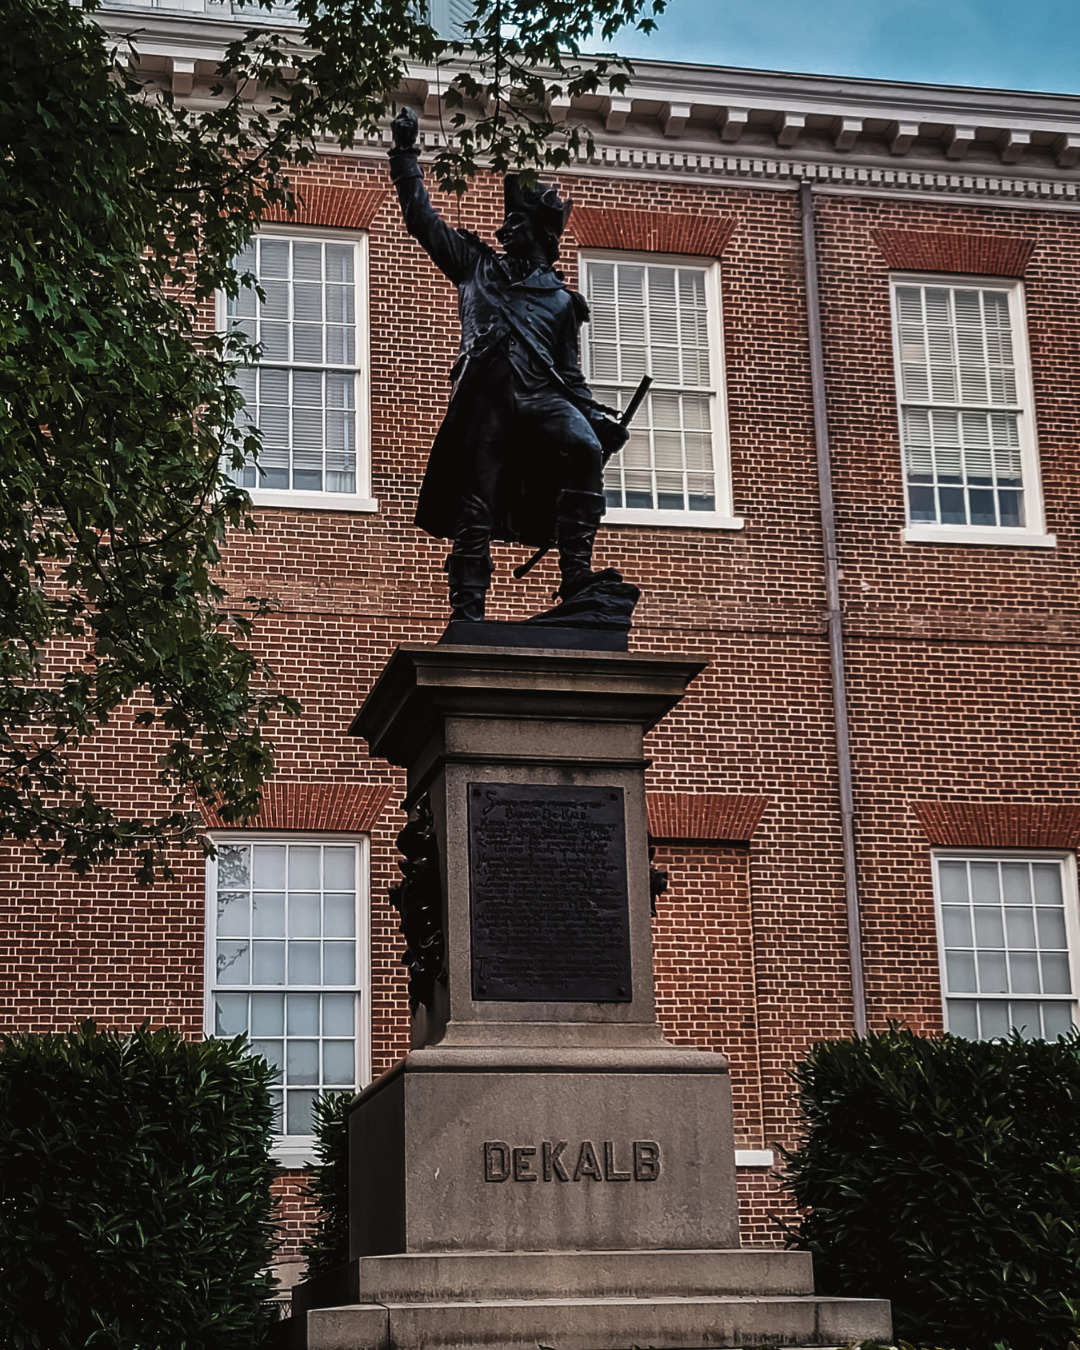 Photo shows Johann de Kalb monument in Annapolis, Maryland. I find that touring the city on foot is one of the best things to do when you visit Annapolis.